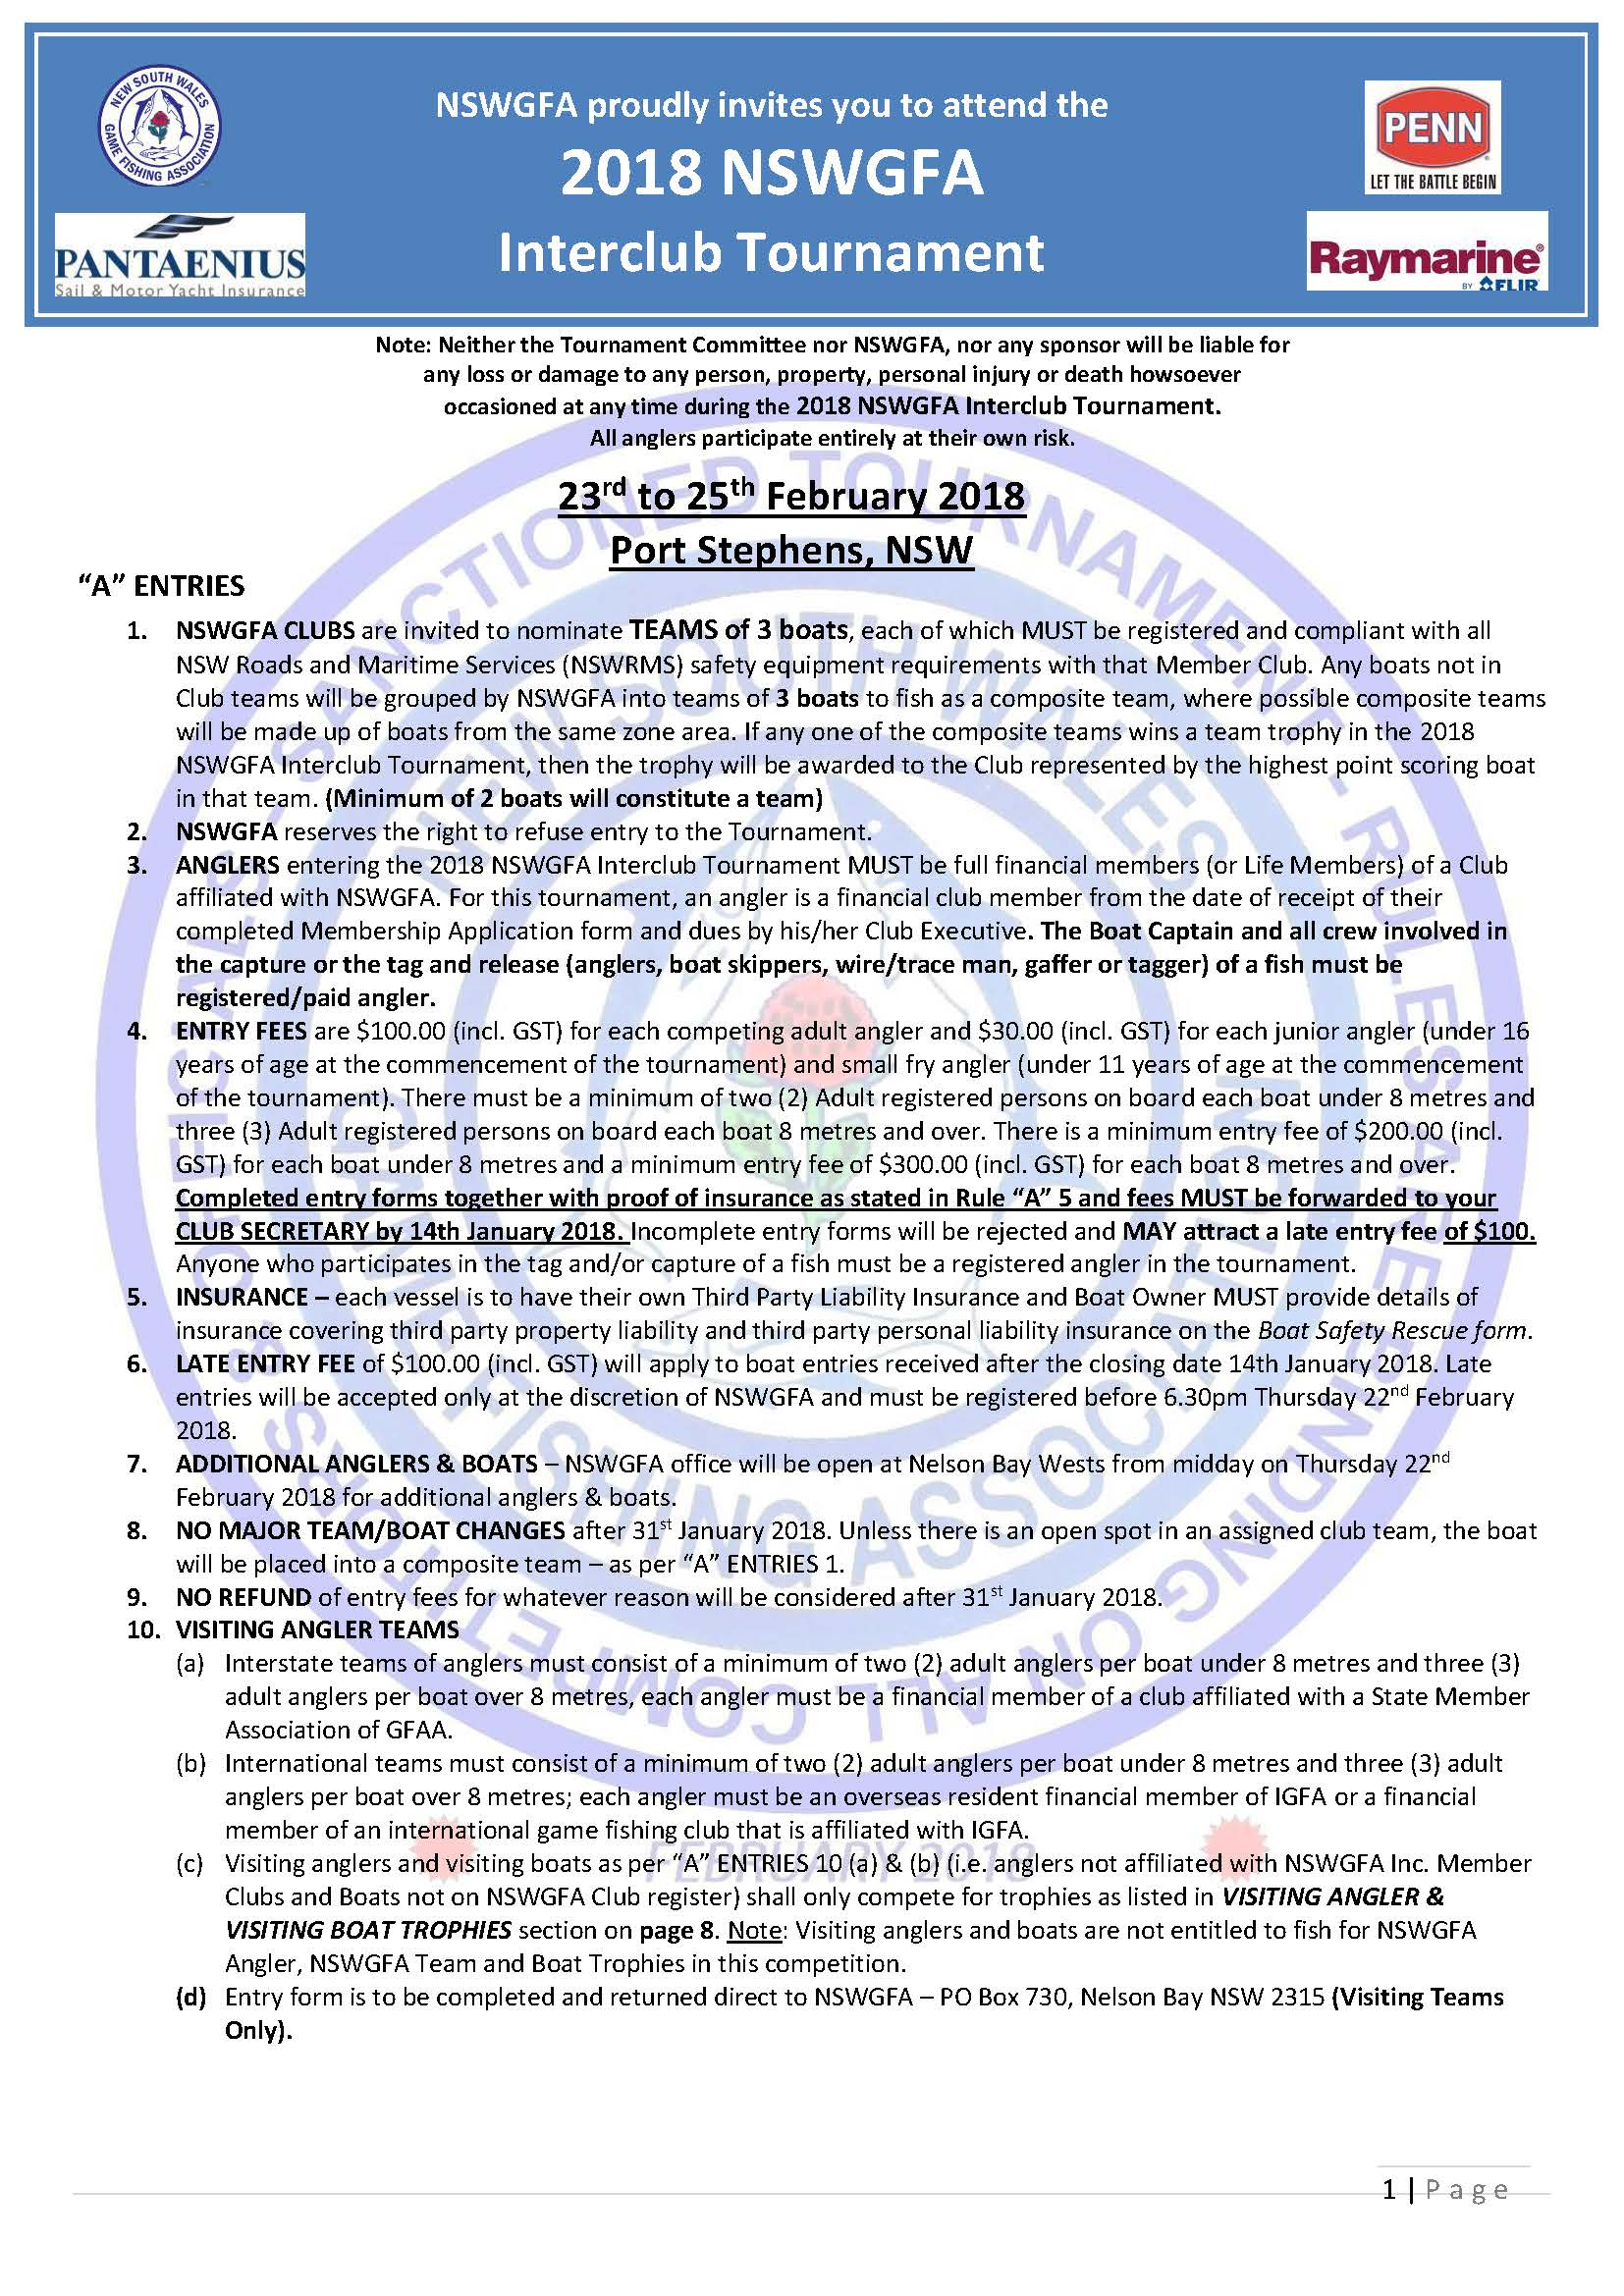 2018 interclub tournament rules entry form and safety form 1 Page 01